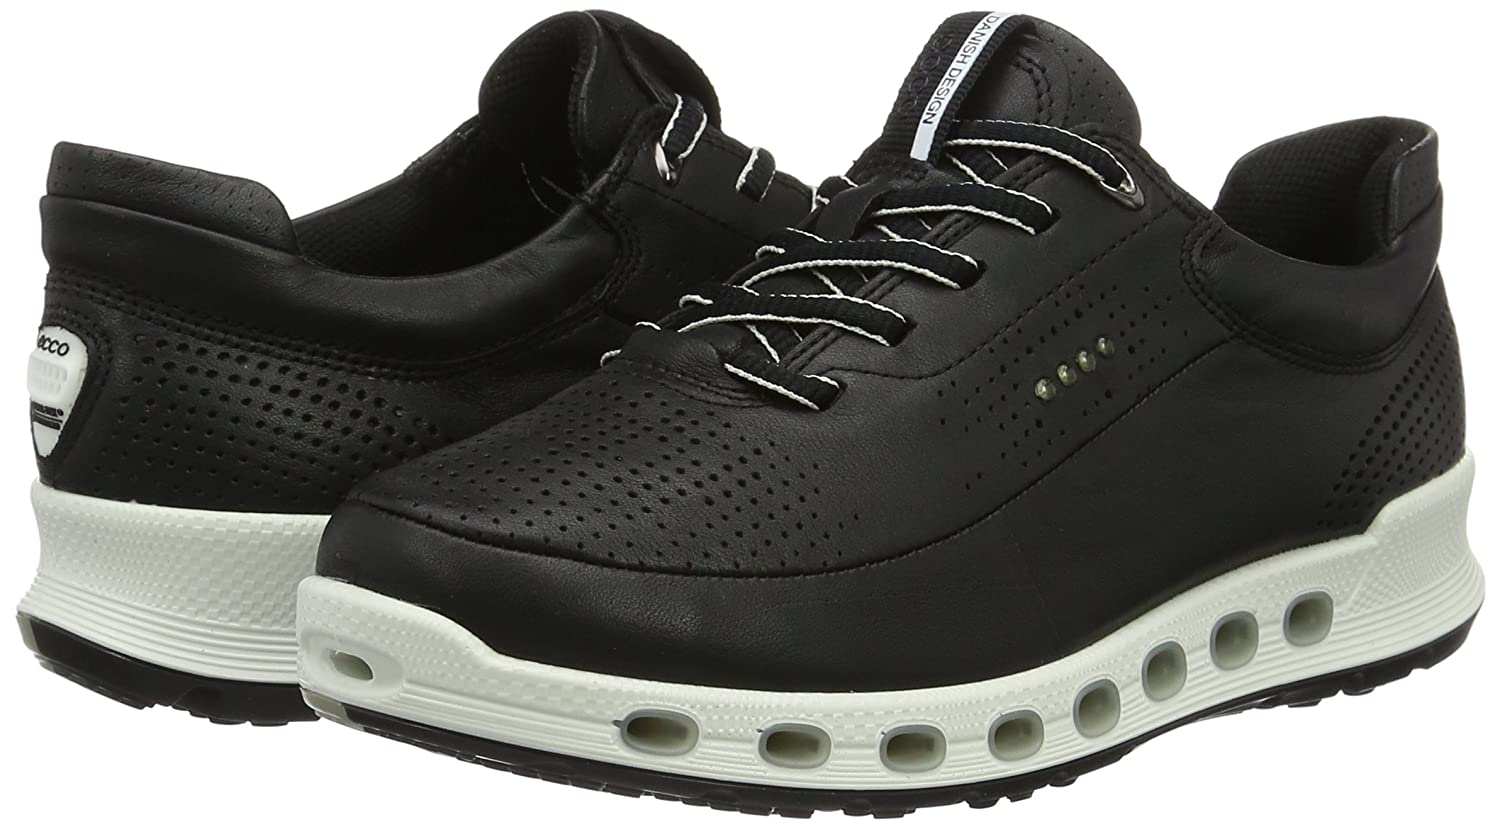 7c9c0d85bfc9e Amazon.com | ECCO Women's Cool 2.0 Gore-tex Sneaker Fashion | Fashion  Sneakers